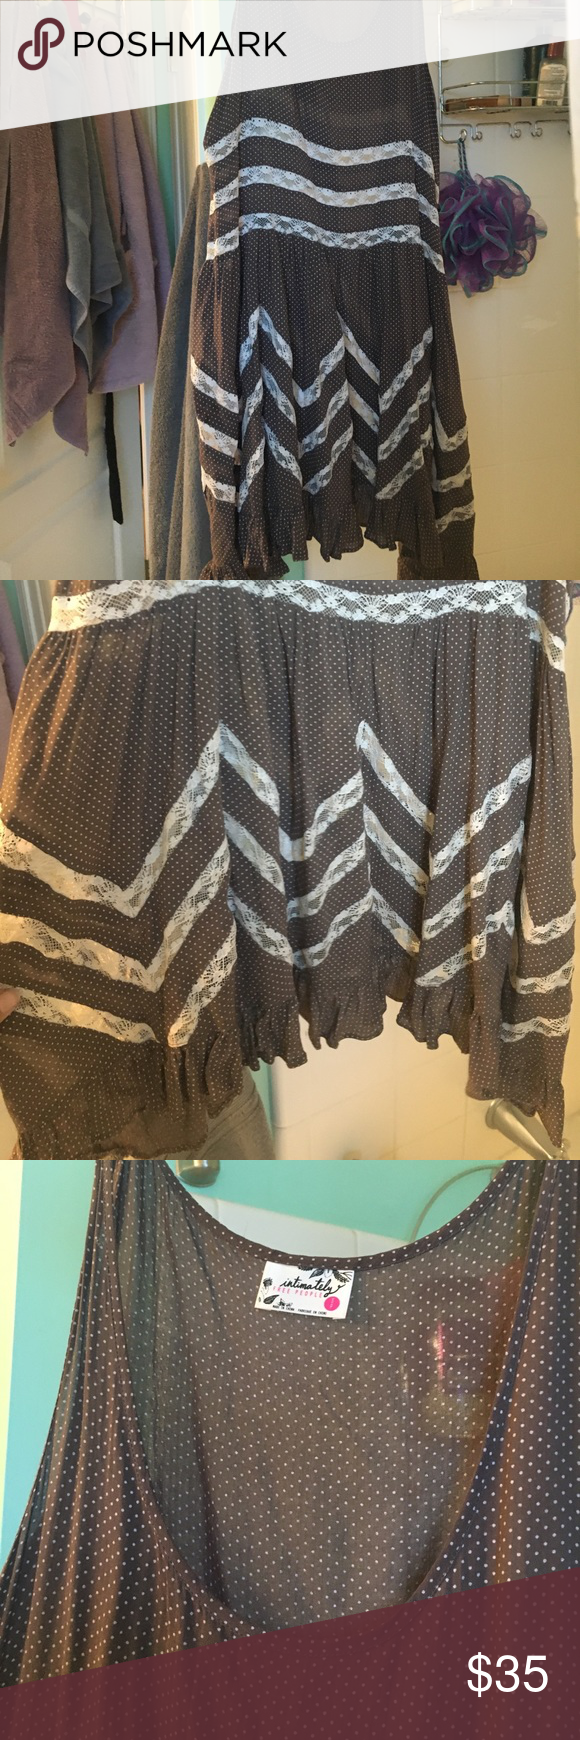 Free people tunic Size x small free people tanish brown can wear with jeans or alone Free People Dresses Mini